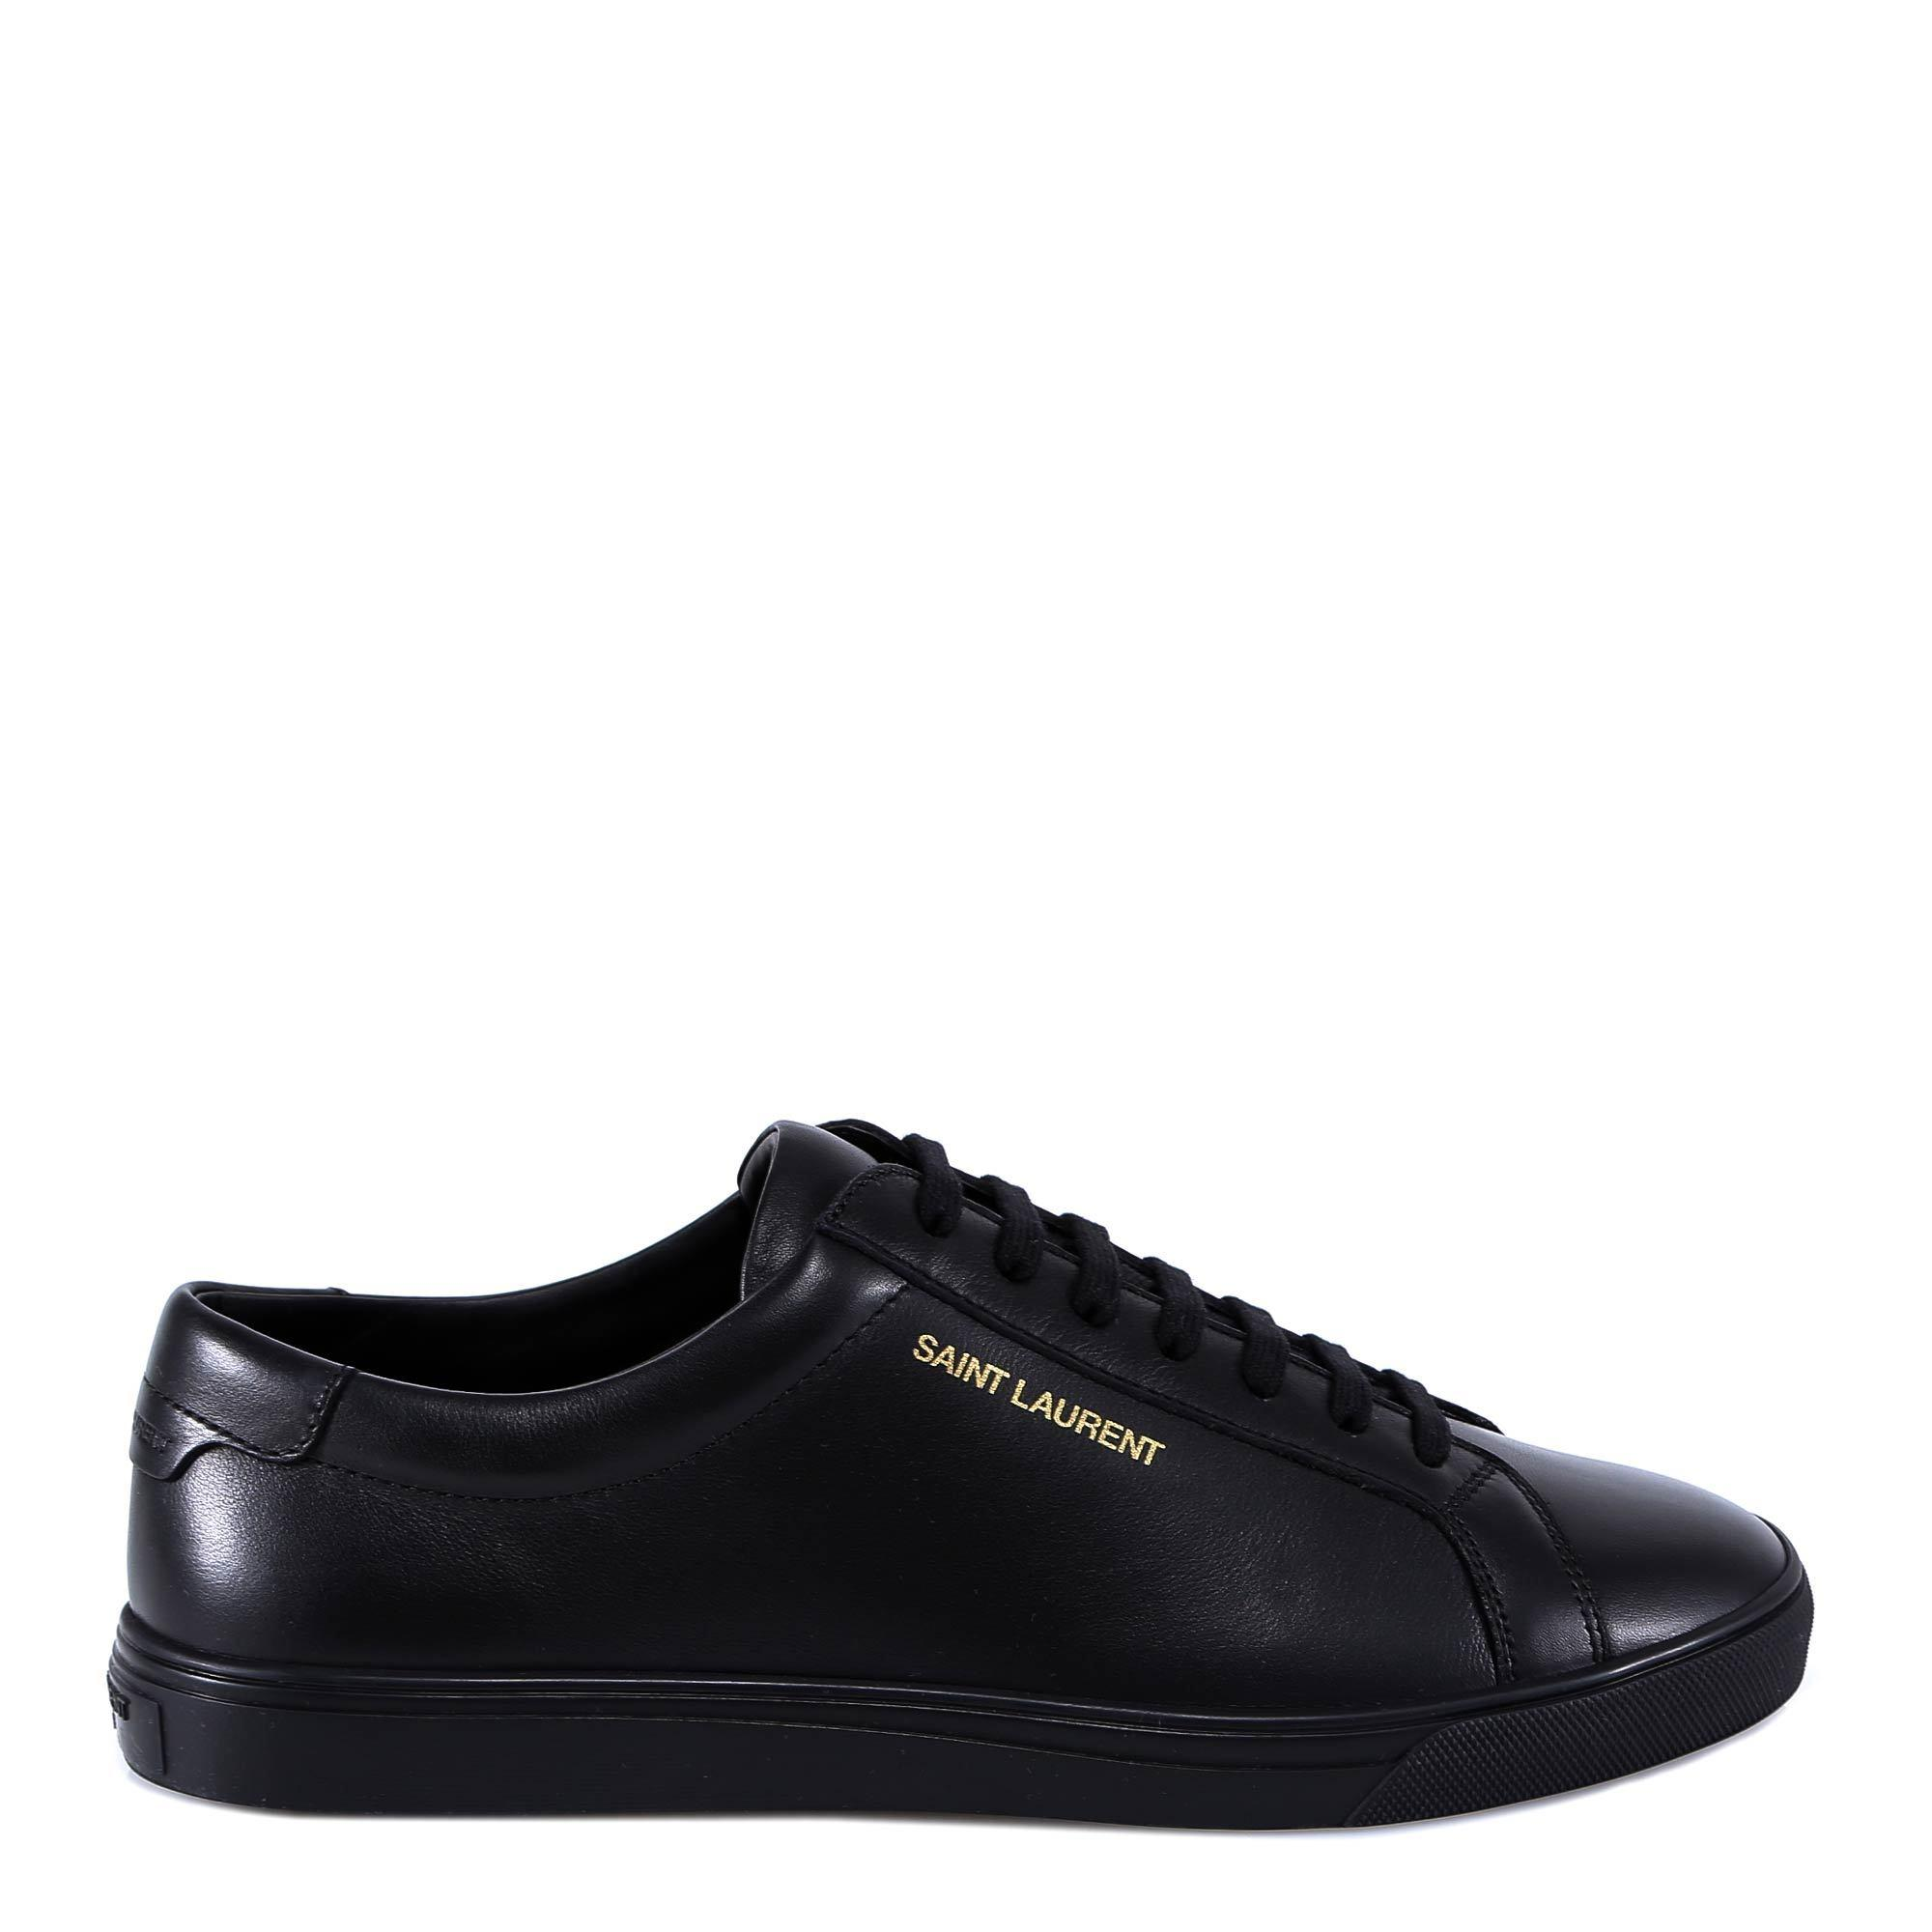 6aa5591e86f Saint Laurent - Black Andy Lace-up Sneakers for Men - Lyst. View fullscreen